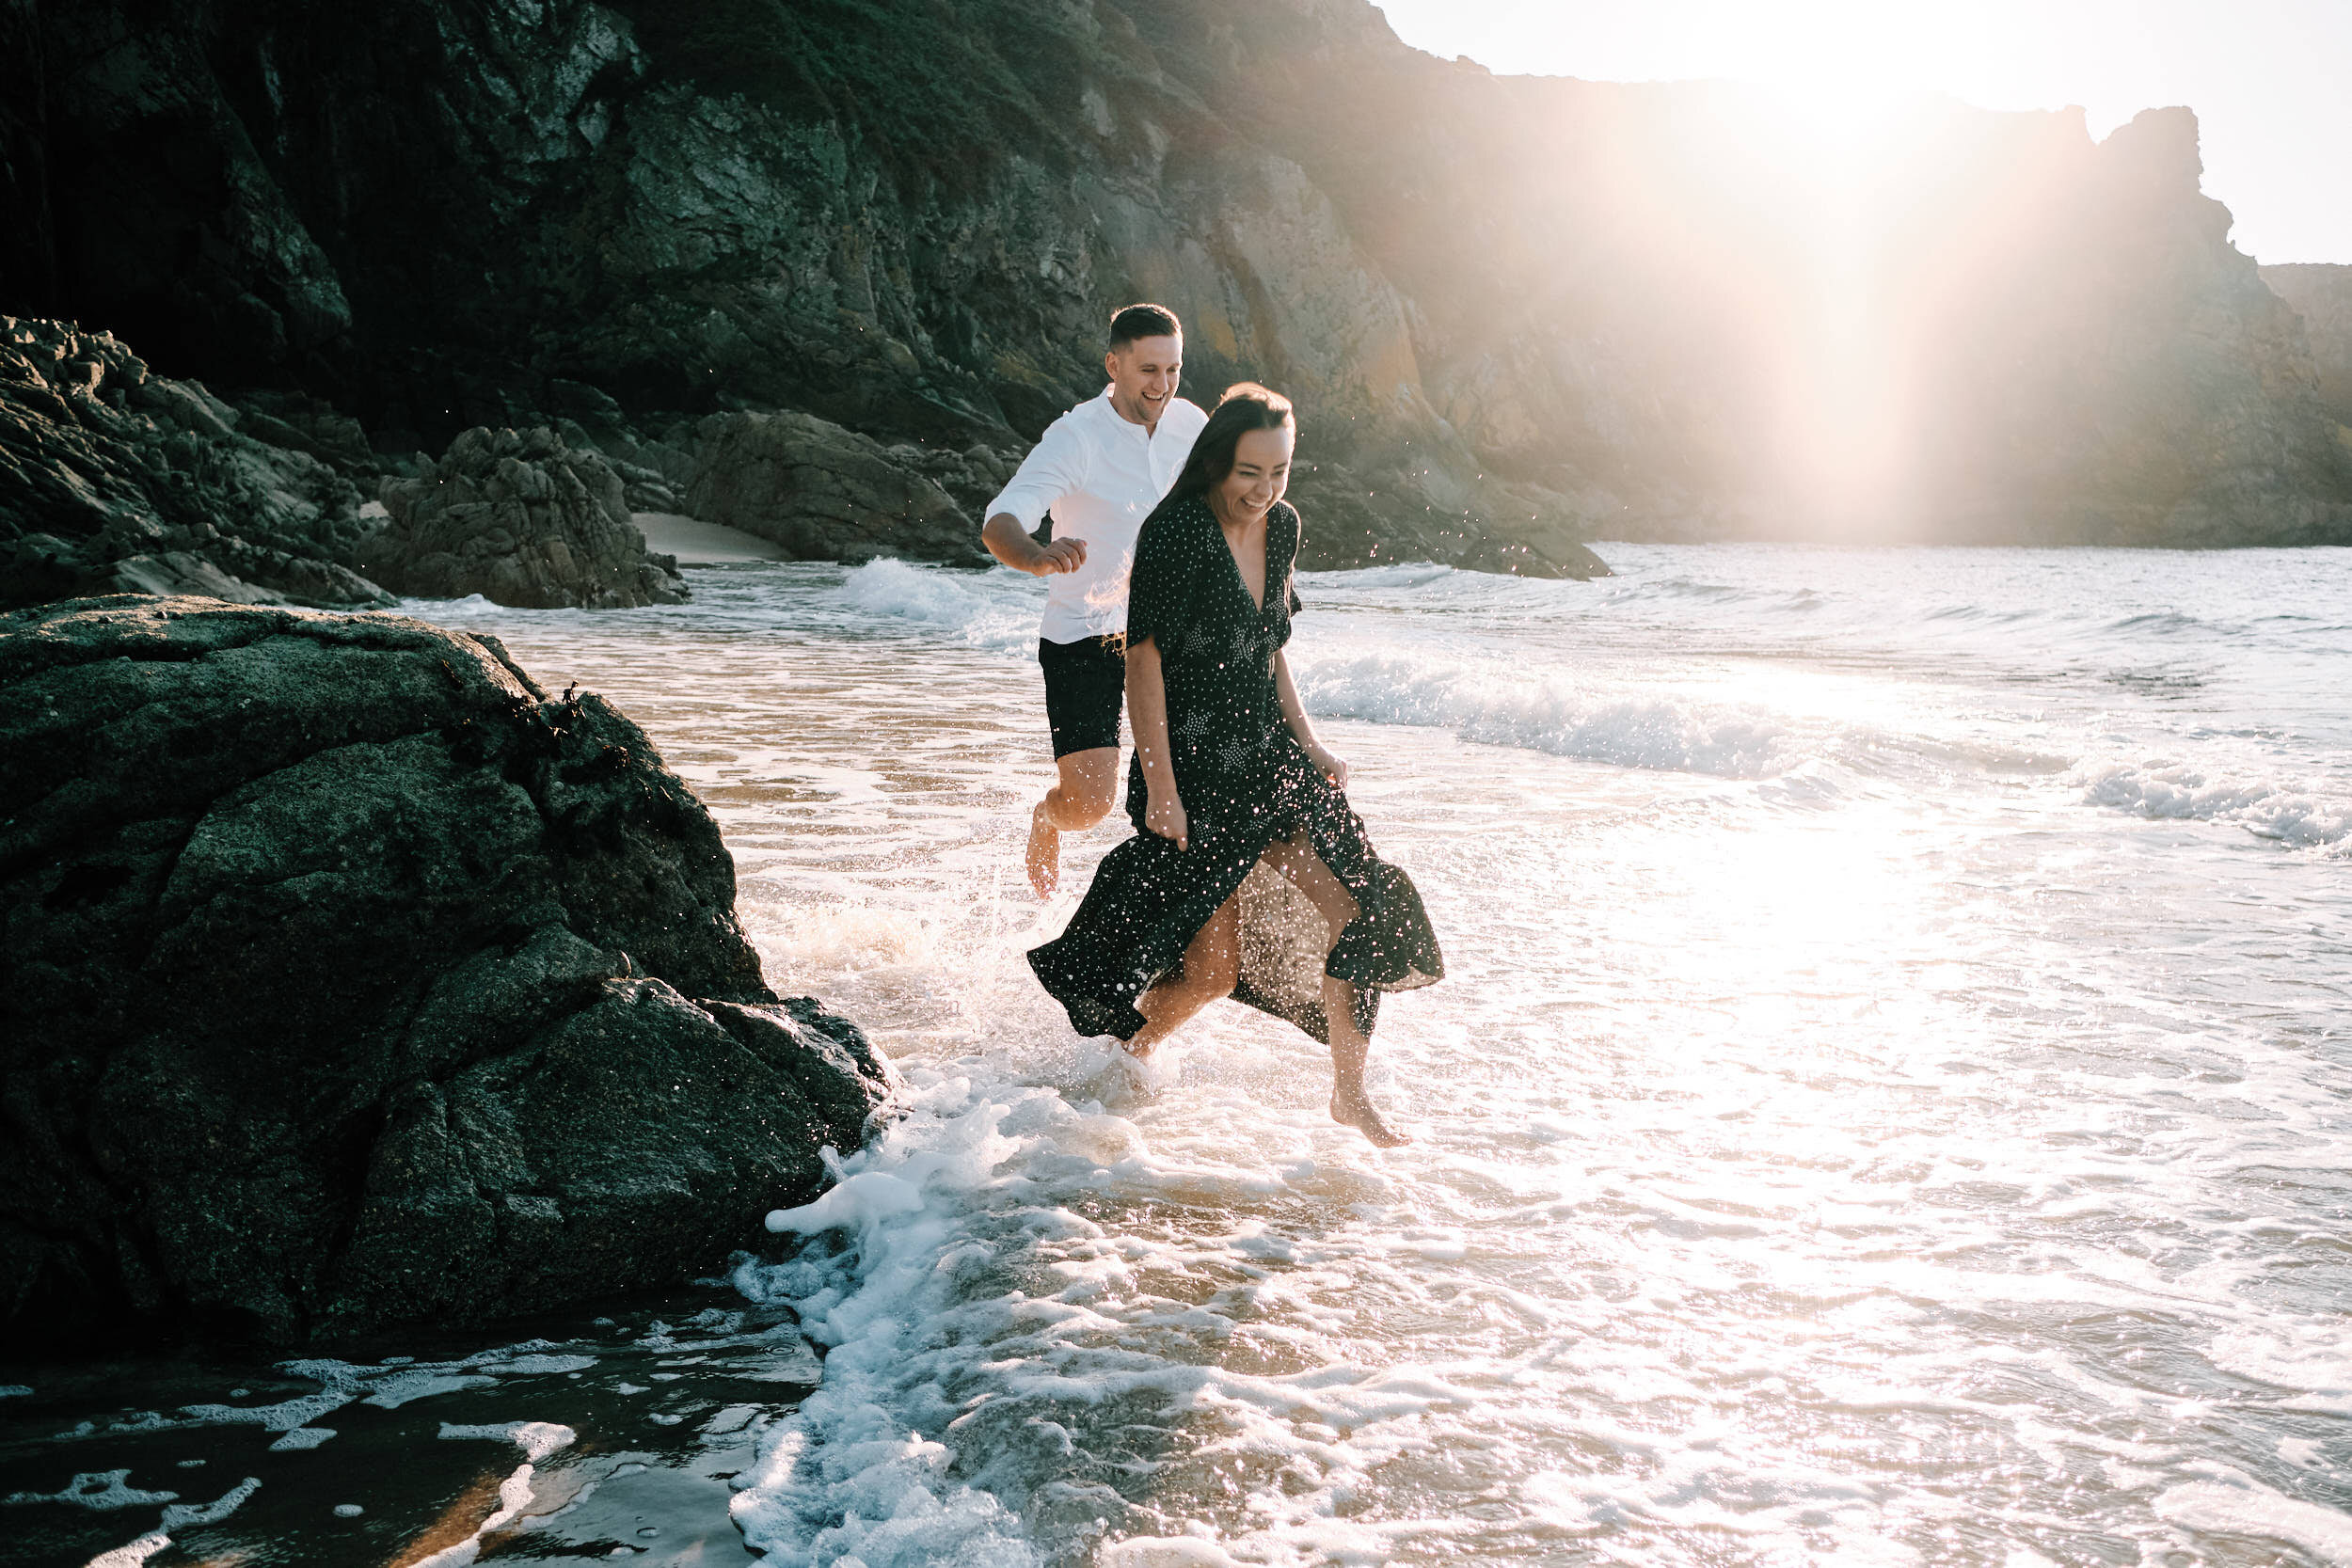 Couple Shoot on the beach at sunset in the sea 2020 wedding planner